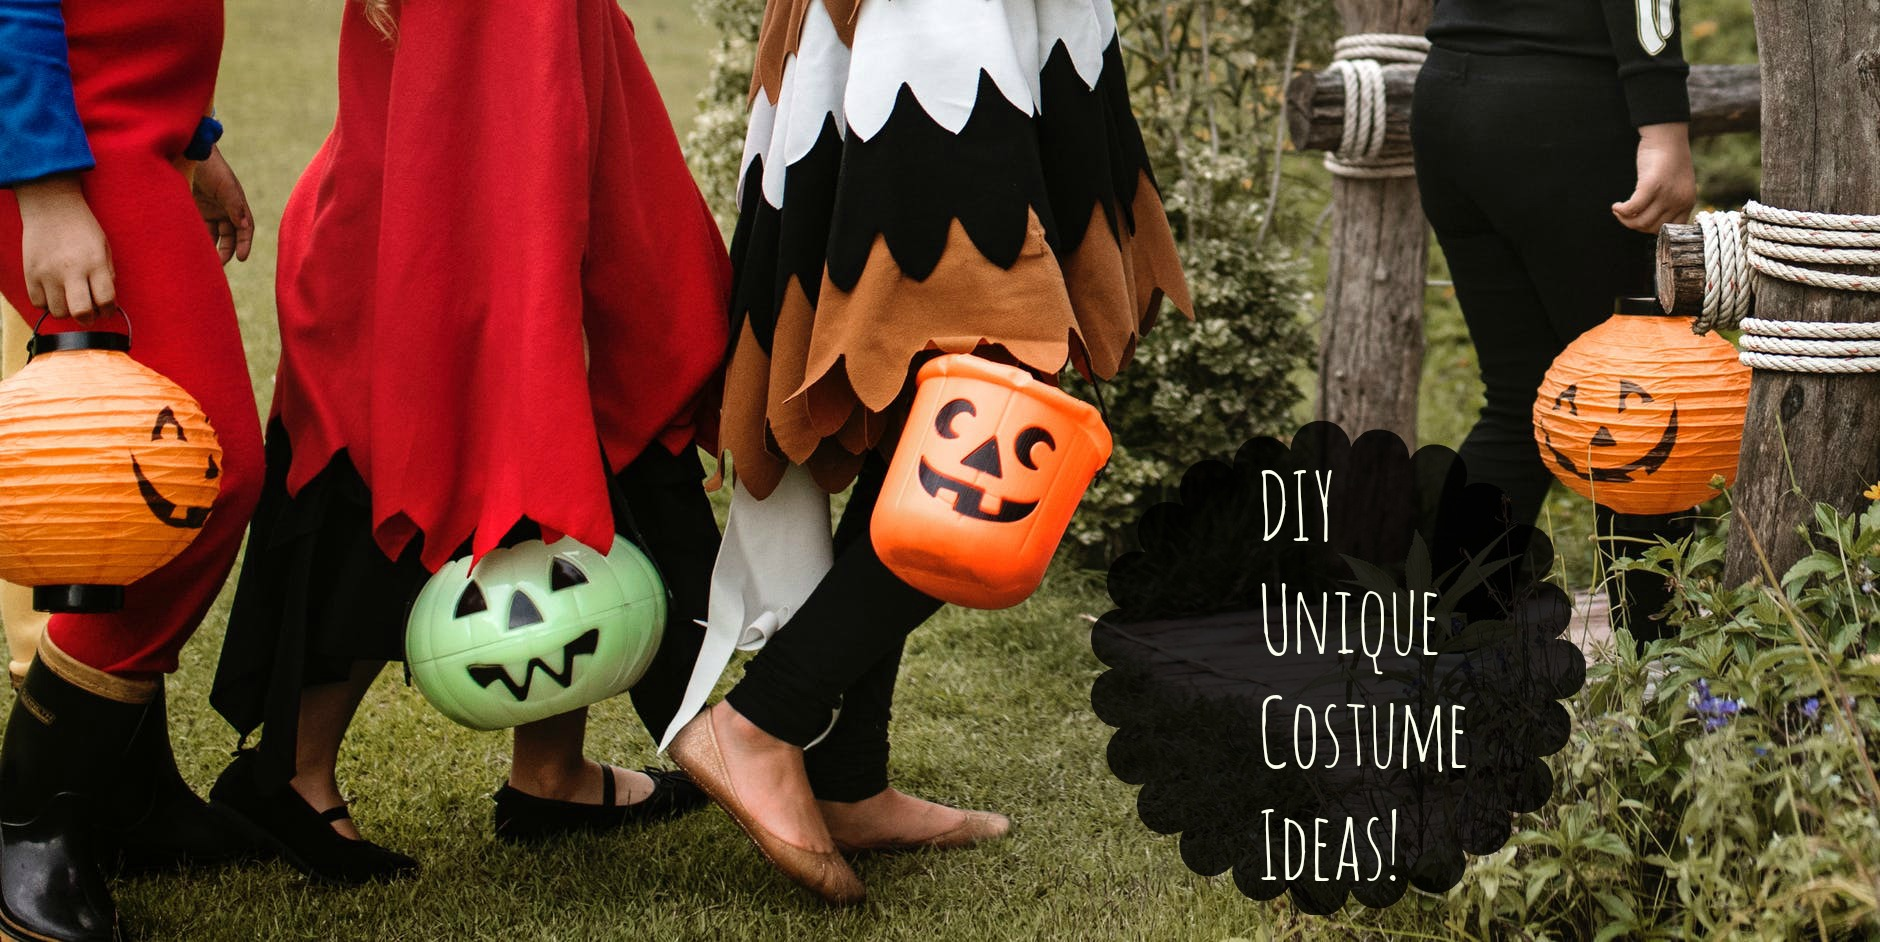 DIY Unique Costume Ideas